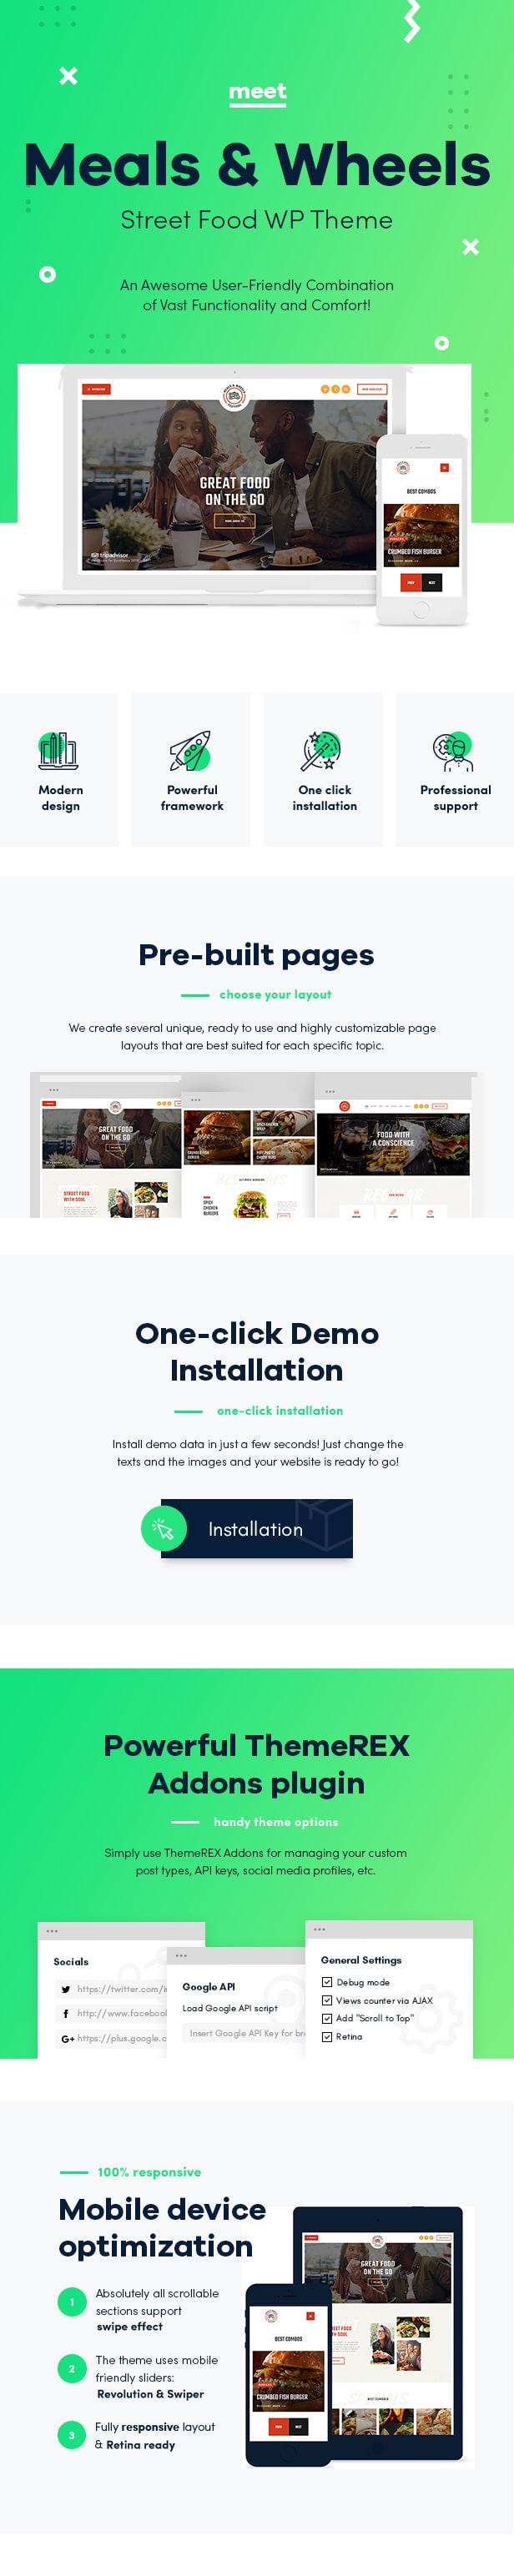 Meals & Wheels | Street Food Festival & Fast Food Delivery WordPress Theme - 1